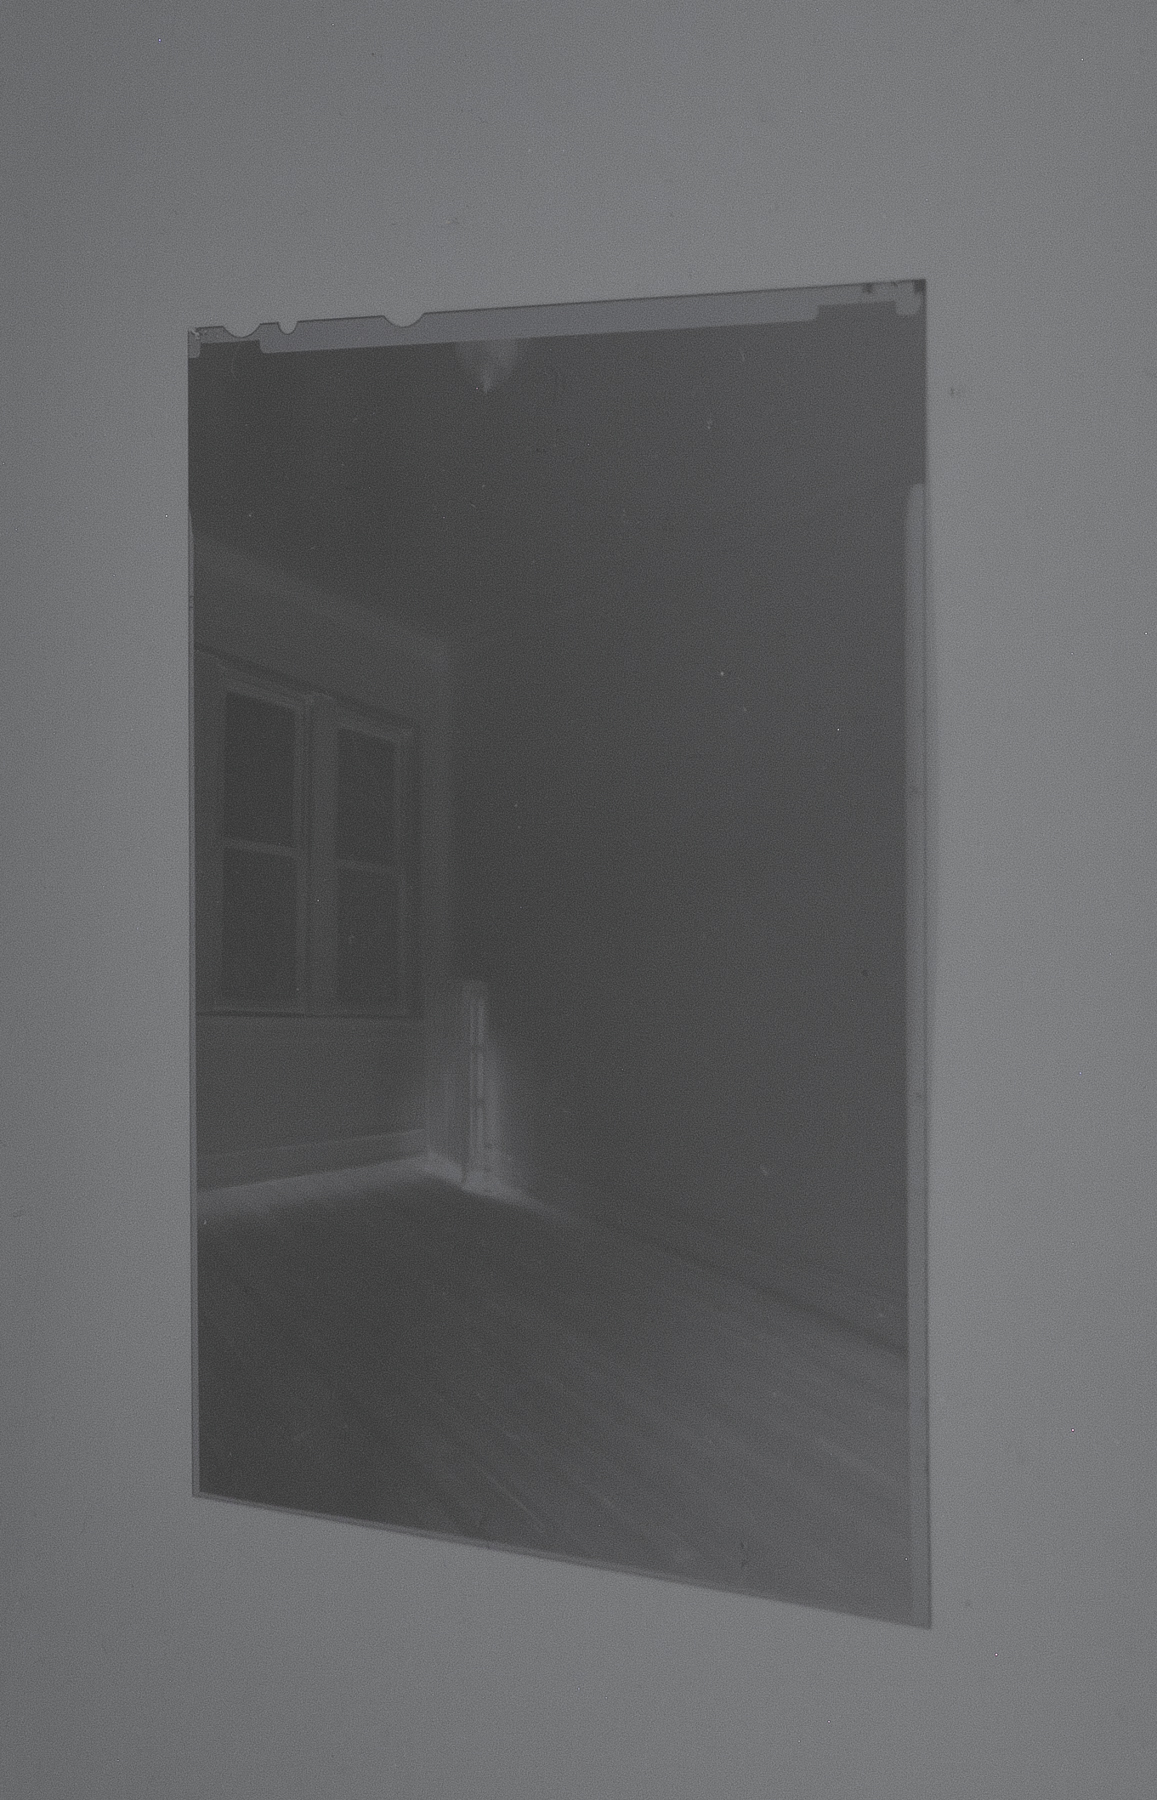 Kioto Aoki,  sight, ongoing,  Silver gelatin lumen print, contact frame, 2019